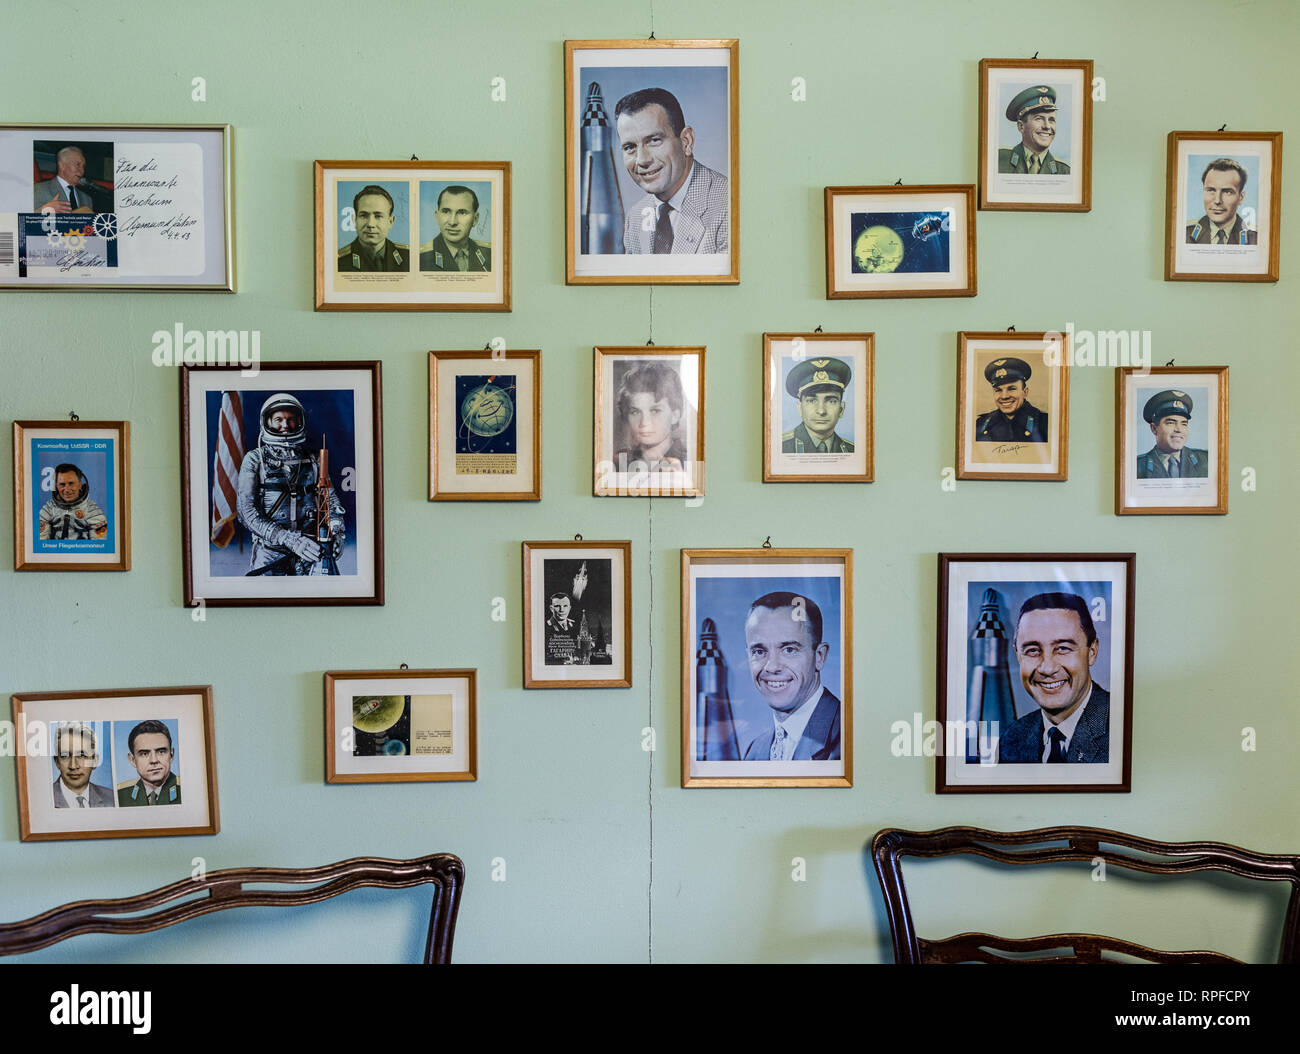 Bochum, Germany. 19th Feb, 2019. An ancestral gallery of famous cosmonauts hangs in the office of Thilo Elsner, head of the Bochum Observatory. With the commissioning of a travelling satellite, the observatory in Bochum celebrates a milestone in amateur radio. Qatar OSCAR-100, or QO-100 for short, is said to be the world's first satellite to use the non-commercial amateur radio service that rotates with the Earth instead of orbiting it. (to dpa: 'Sparks like an astronaut: first travelling satellite for amateurs' ) Credit: Marcel Kusch/dpa/Alamy Live News - Stock Image